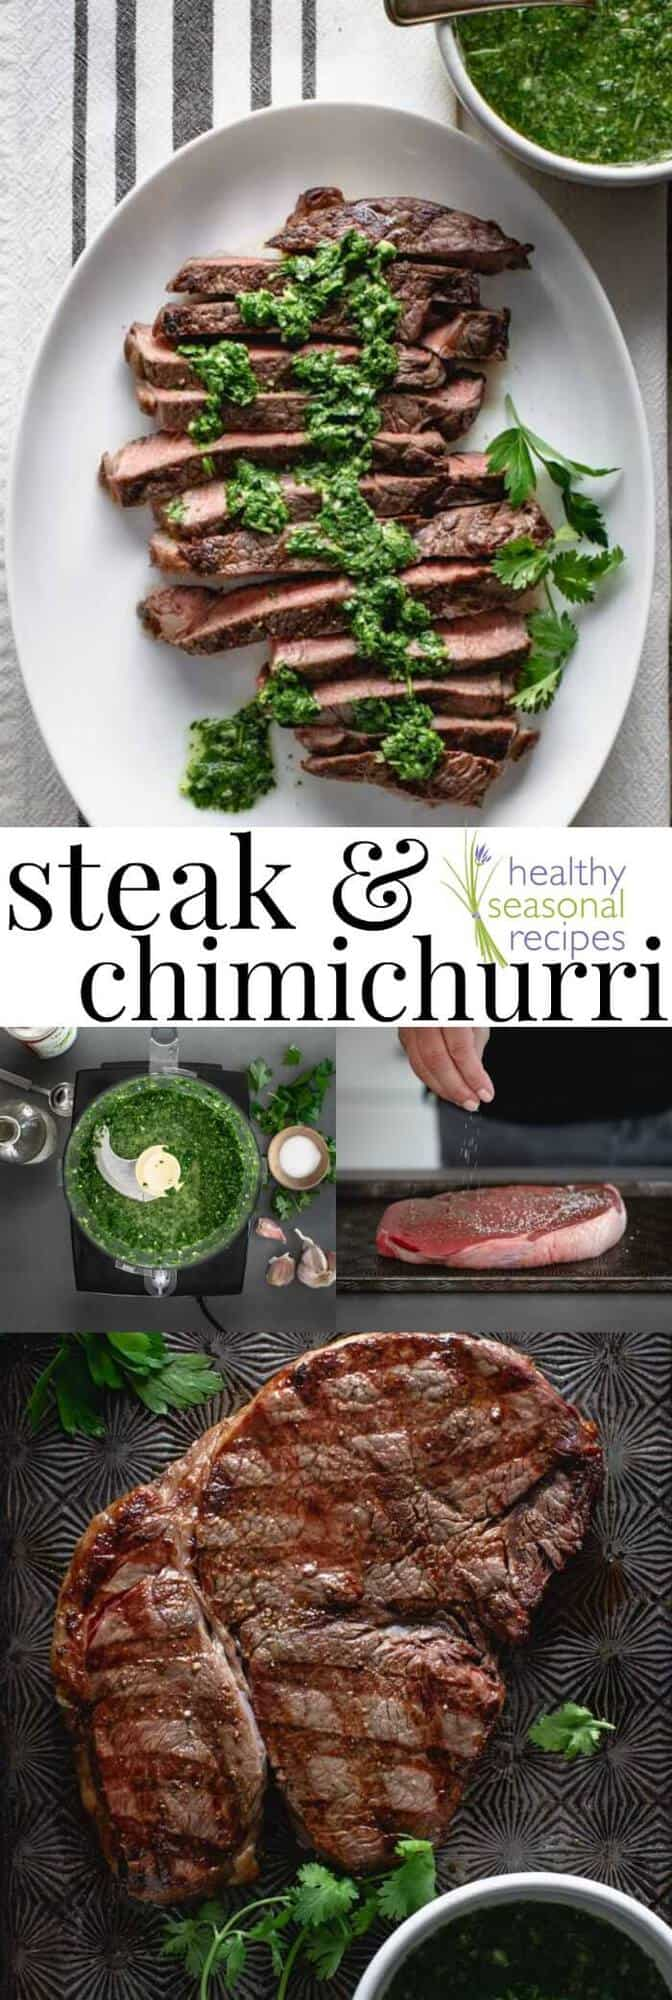 A plate of food with  Steak and Chimichurri